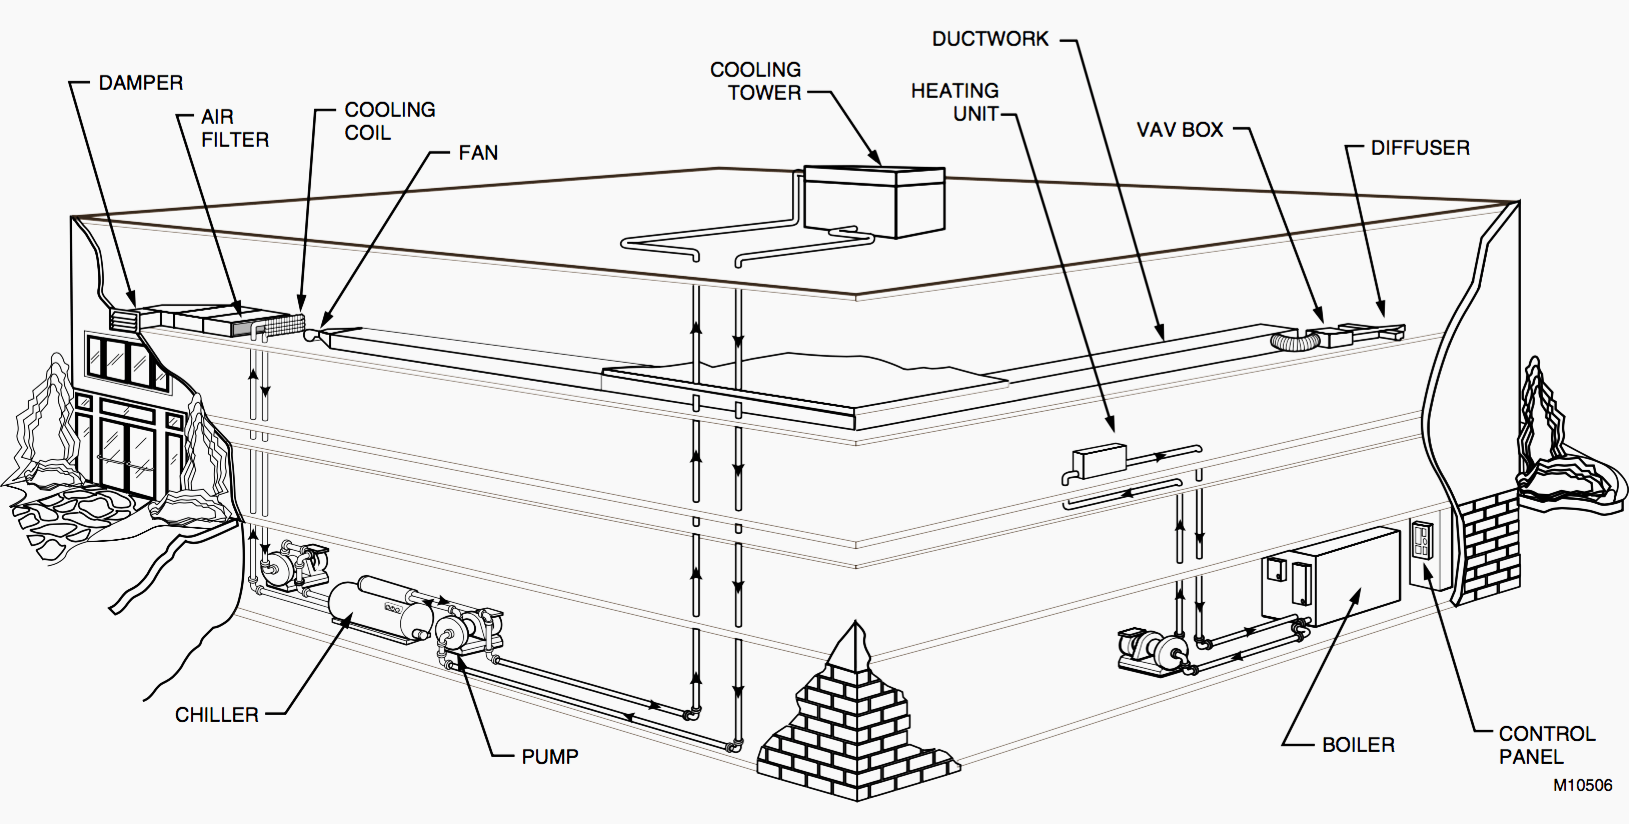 small resolution of typical hvac system in a small building